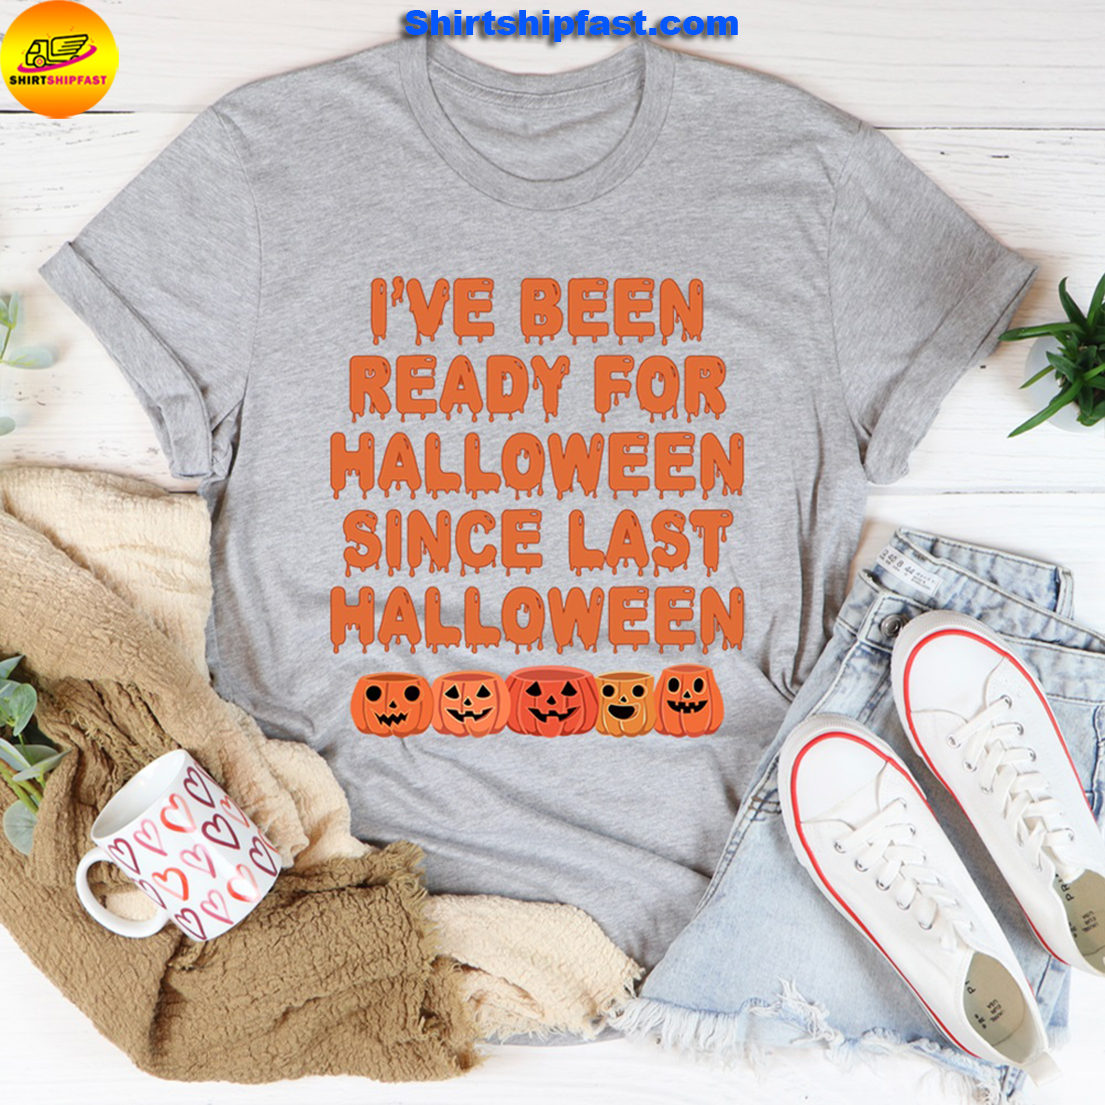 I've been ready for halloween since last halloween shirt - Picture 1